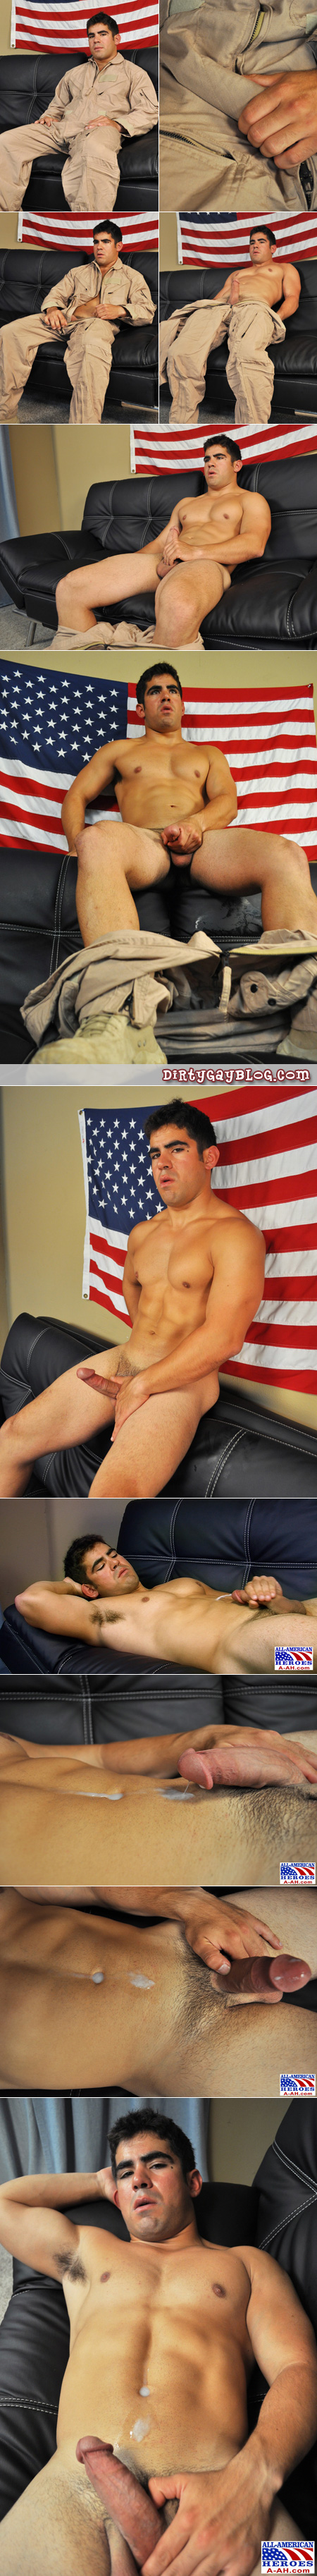 Muscular Latino navy airman pulls his thick dick out of his jumpsuit, masturbating, and shoots cum into his navel with his hairy armpits showing.